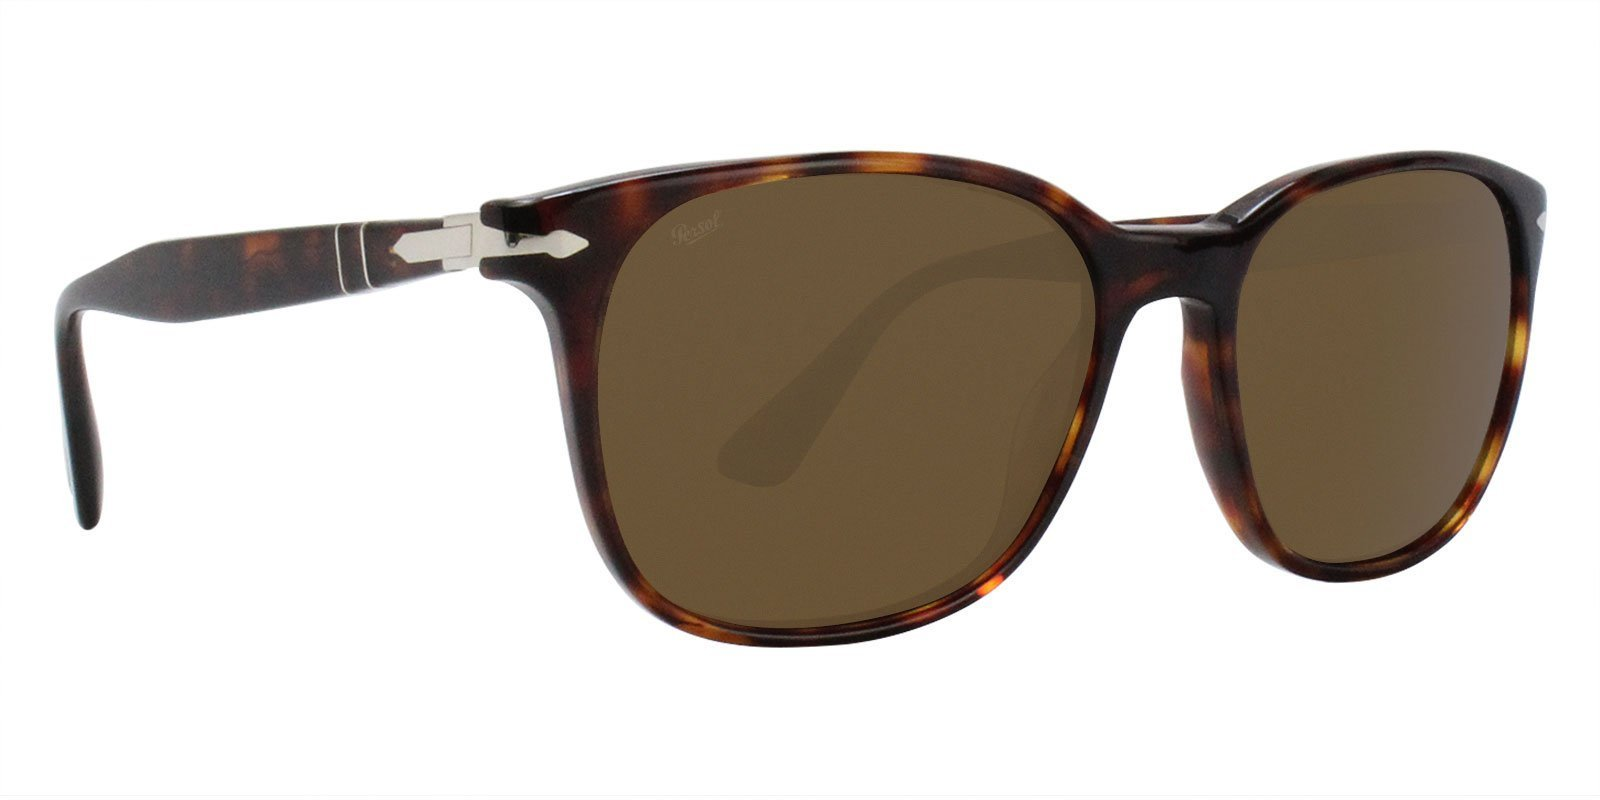 Persol PO3164S Tortoise / Brown Lens Polarized Sunglasses-Sunglasses-Designer Eyes